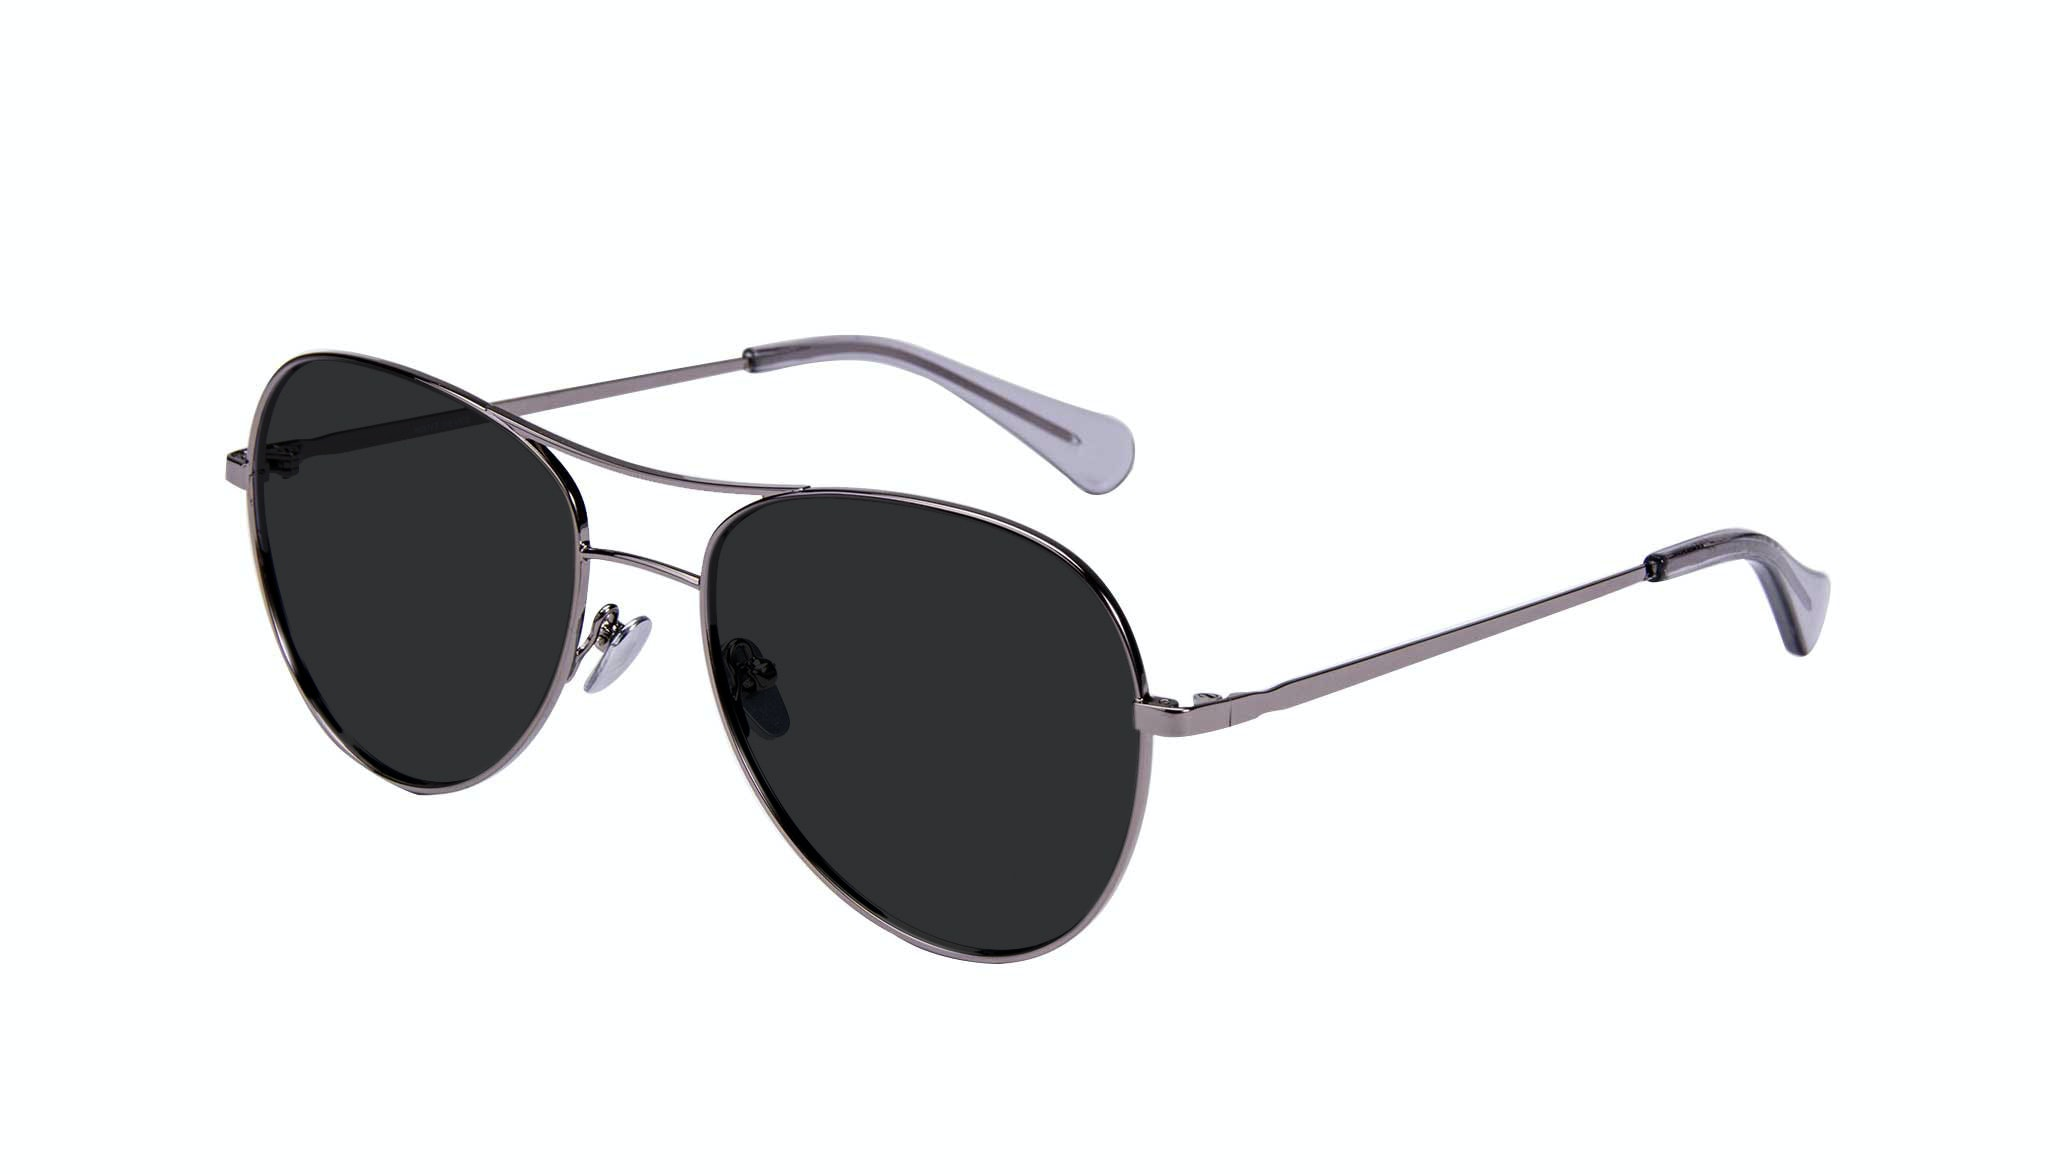 Affordable Fashion Glasses Aviator Sunglasses Women Want Silver Tilt